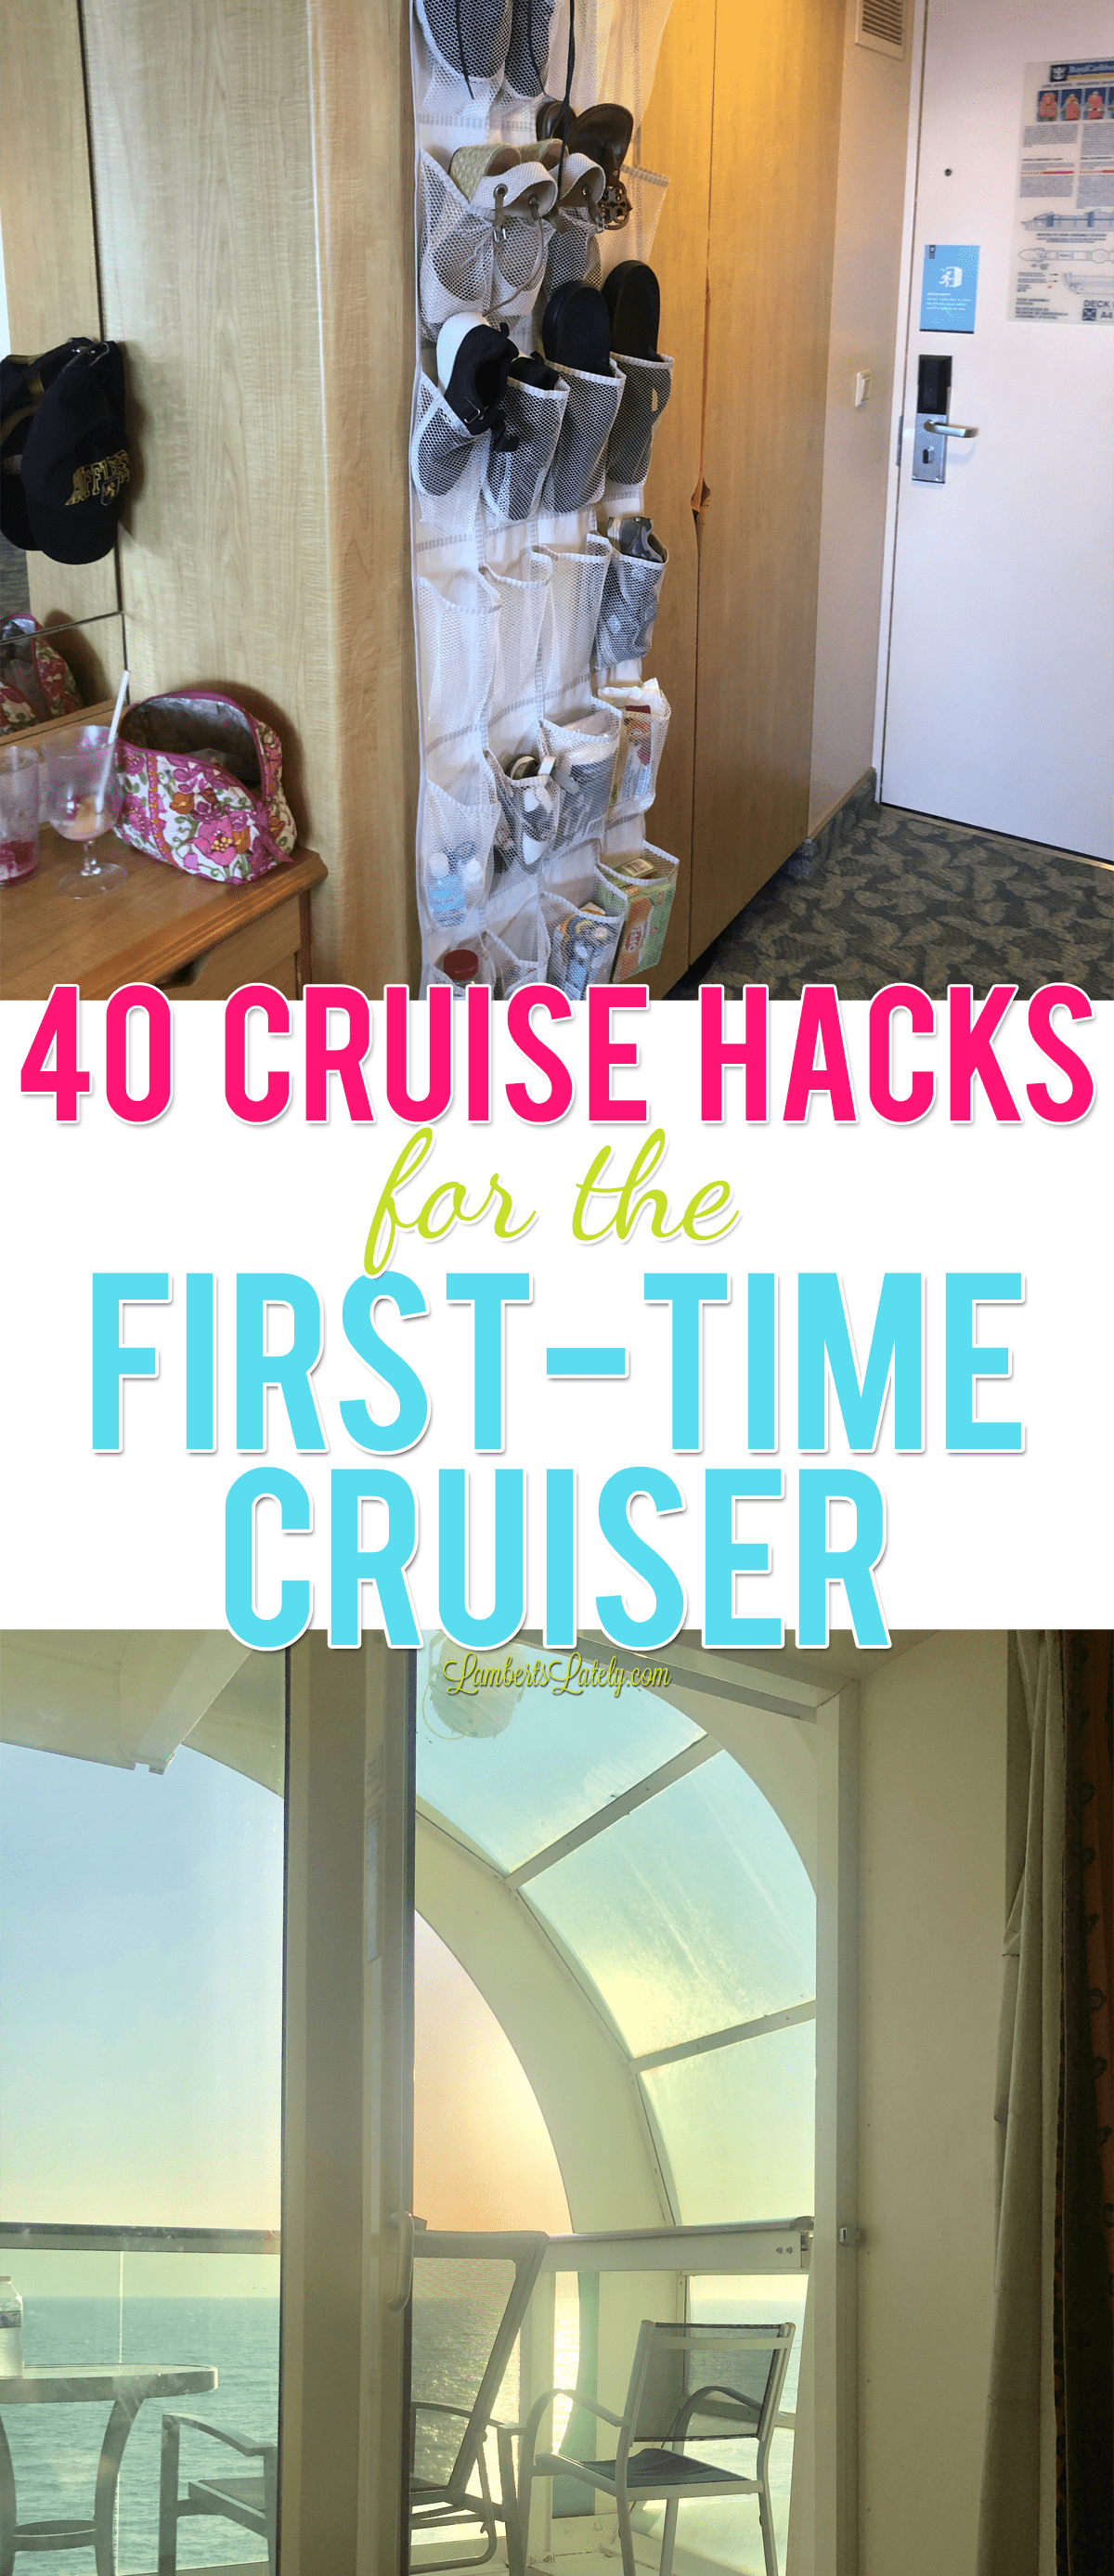 Planning a first-time cruise on Royal Caribbean, Carnival, or Norwegian soon? This post has cruise hacks and tips that show how to save money, optimize alcohol and dining prices, and ideas for packing organizational tools to make your cruise vacation easy and fun!